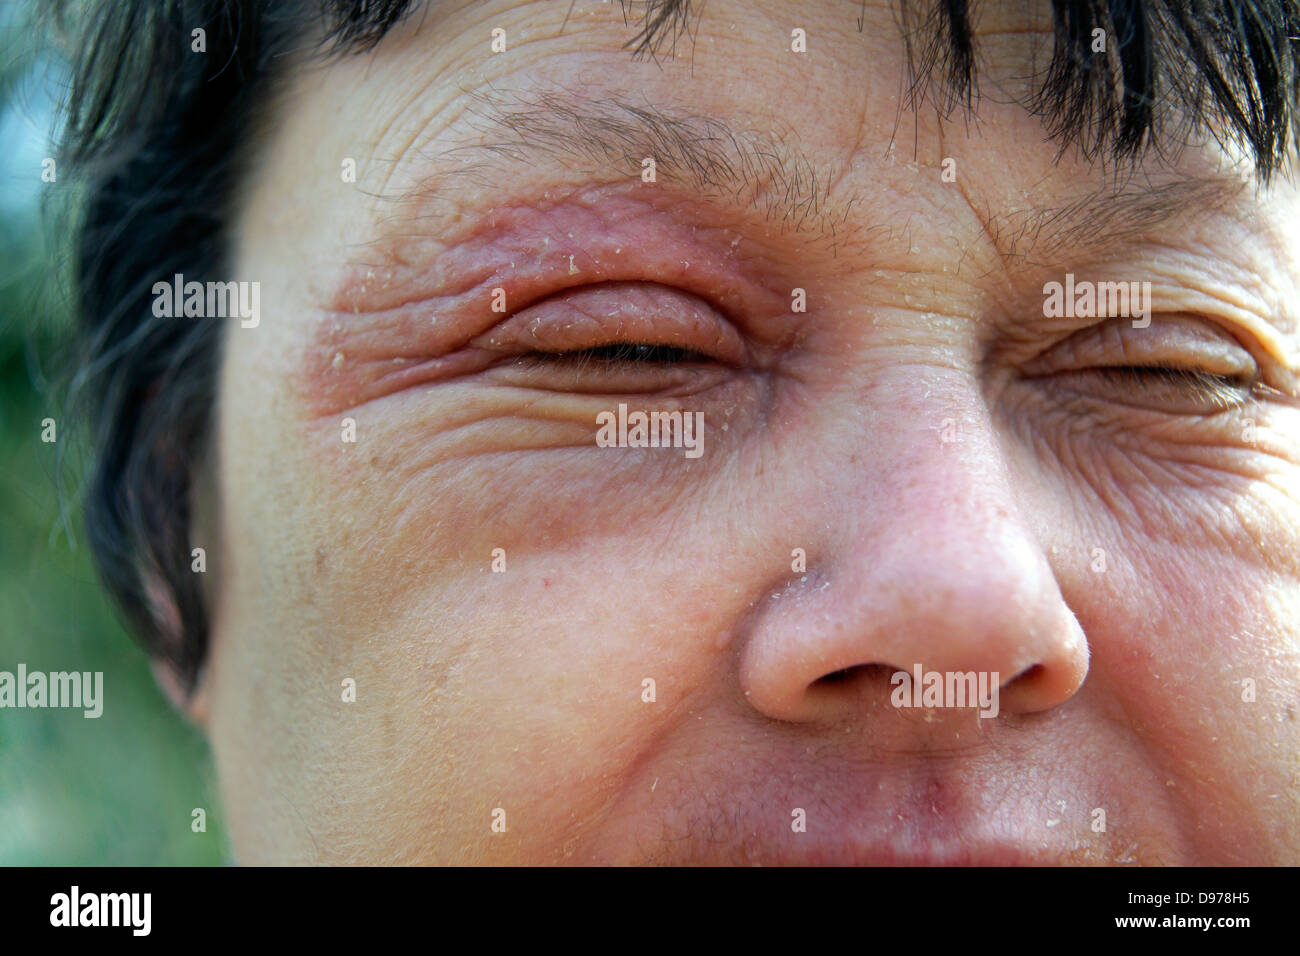 Woman suffering with eczema & a rash covering most of the face with the soreness surrounding & affecting - Stock Image